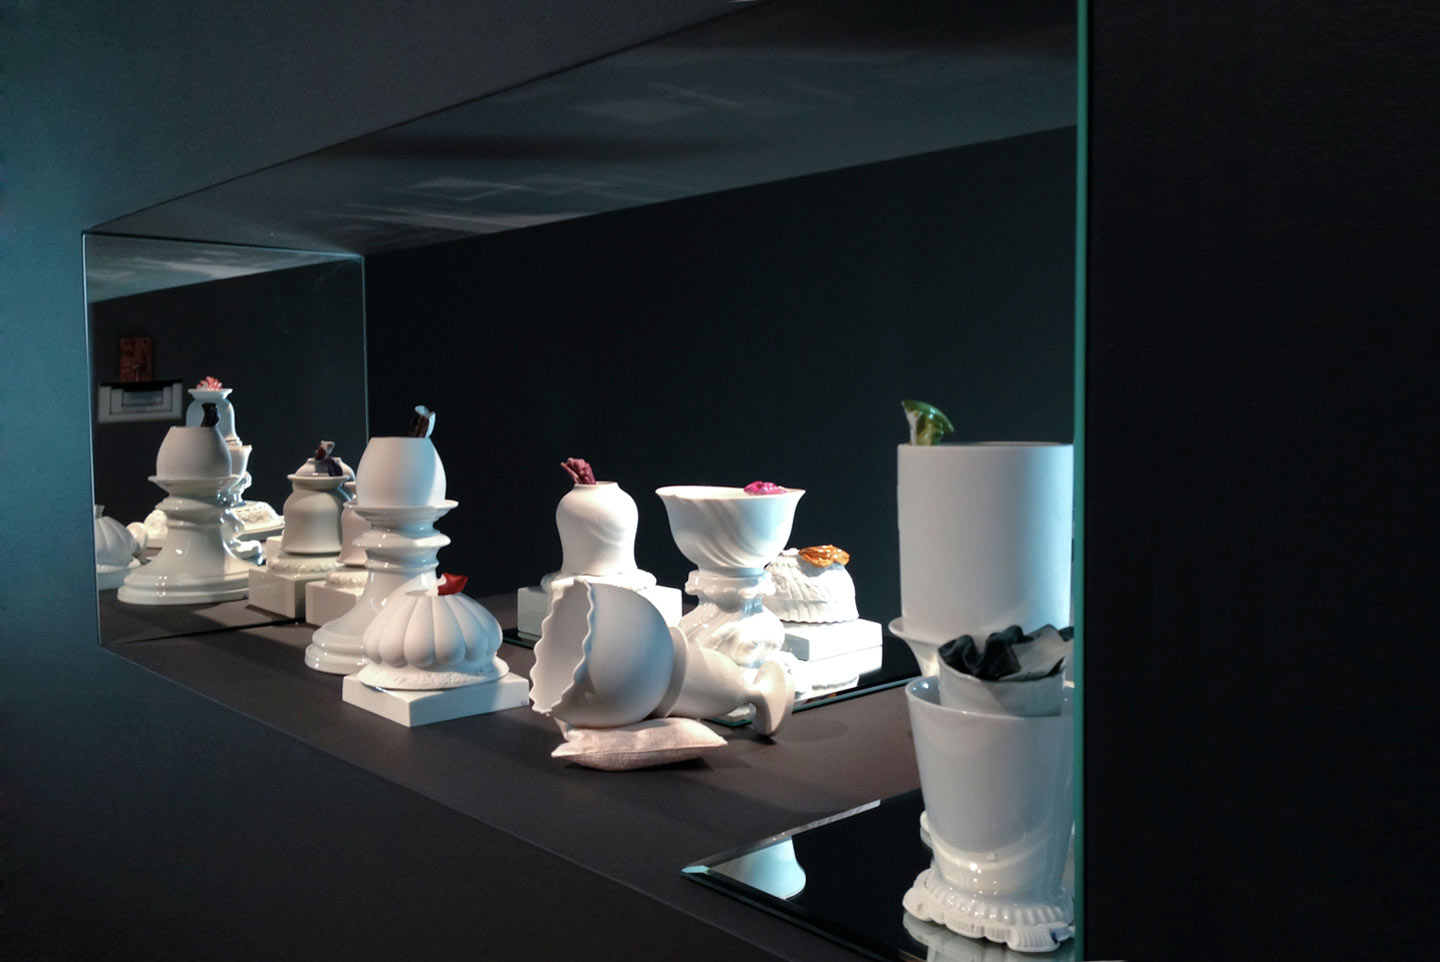 Installation view,  Meissen Recast , solo exhibition at RISD Museum, Providence, RI, 2014.